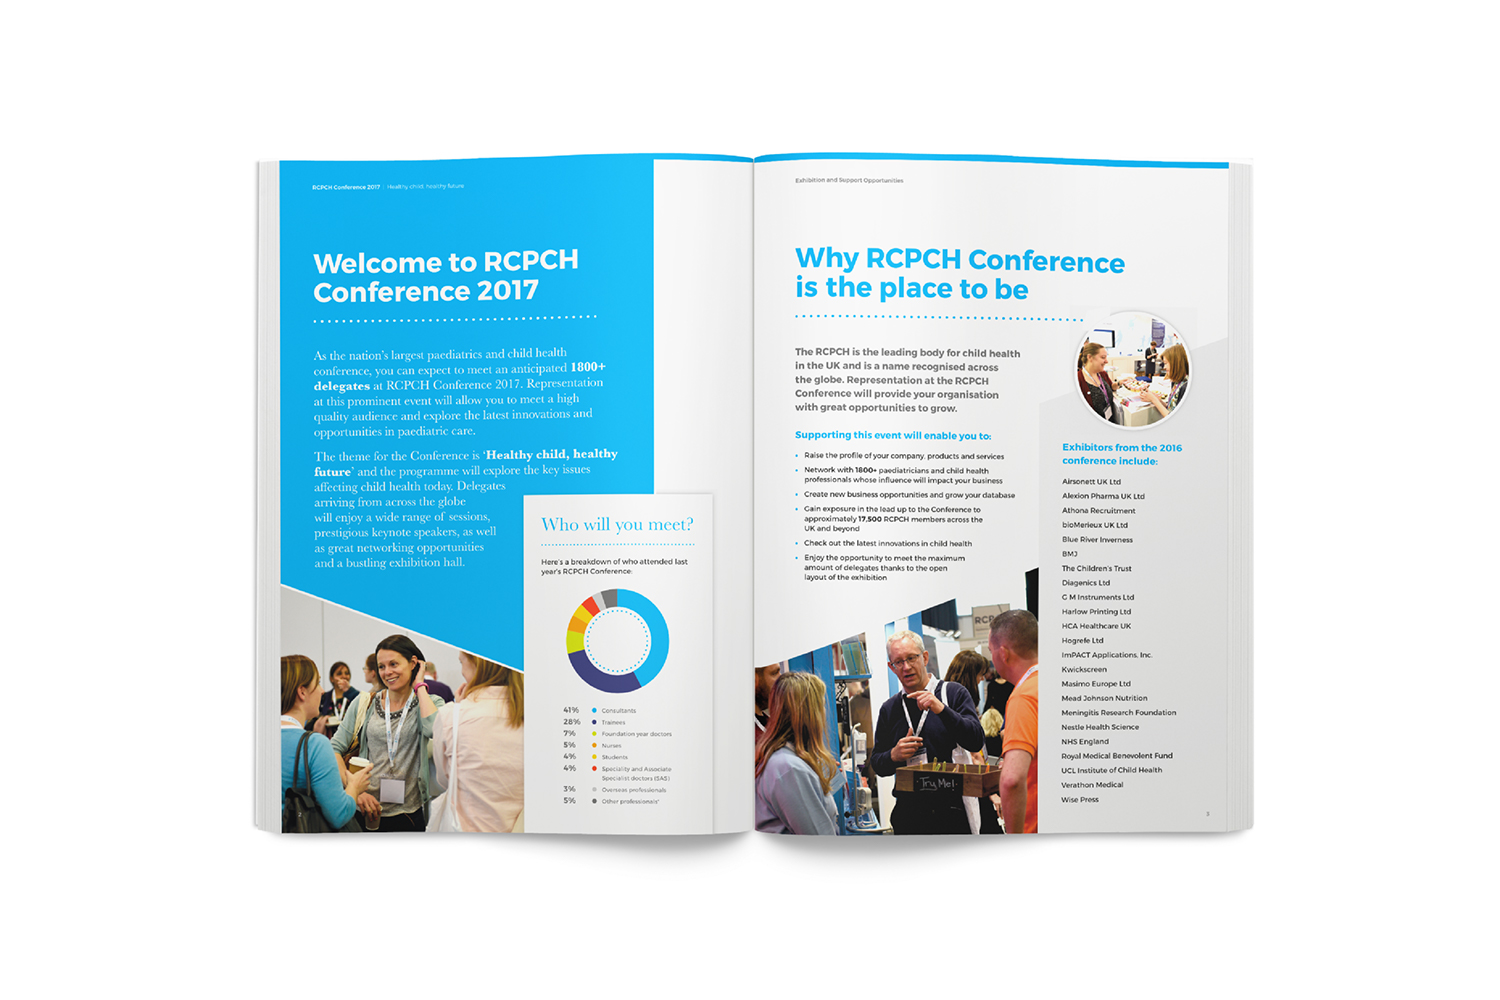 RCPCH_Conference_Guide_2